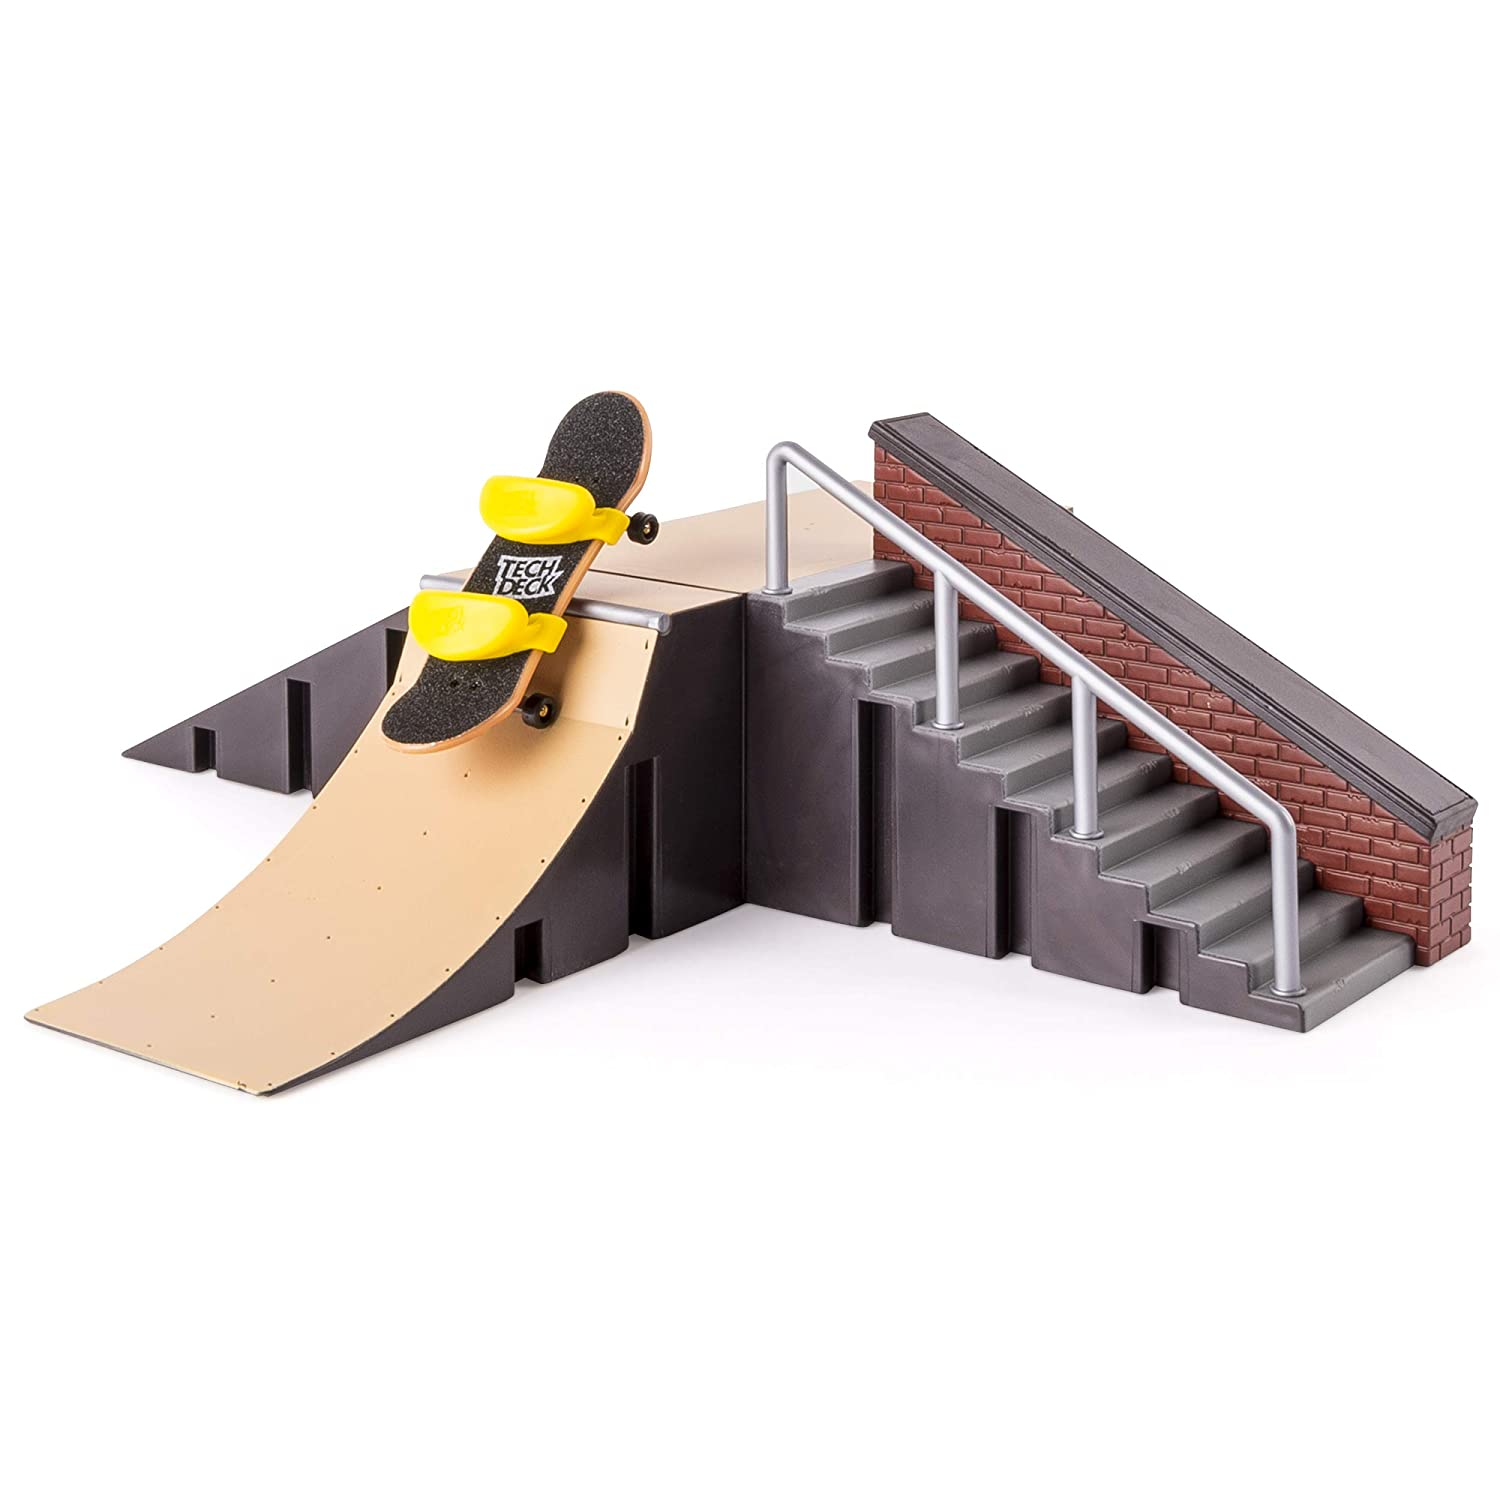 Skateboard Halfpipe Toy Buy Hexbug Circuit Boards Remote Control Ramp Assorted Tech Deck Starter Kit Set And Board Toys Games 1500x1500